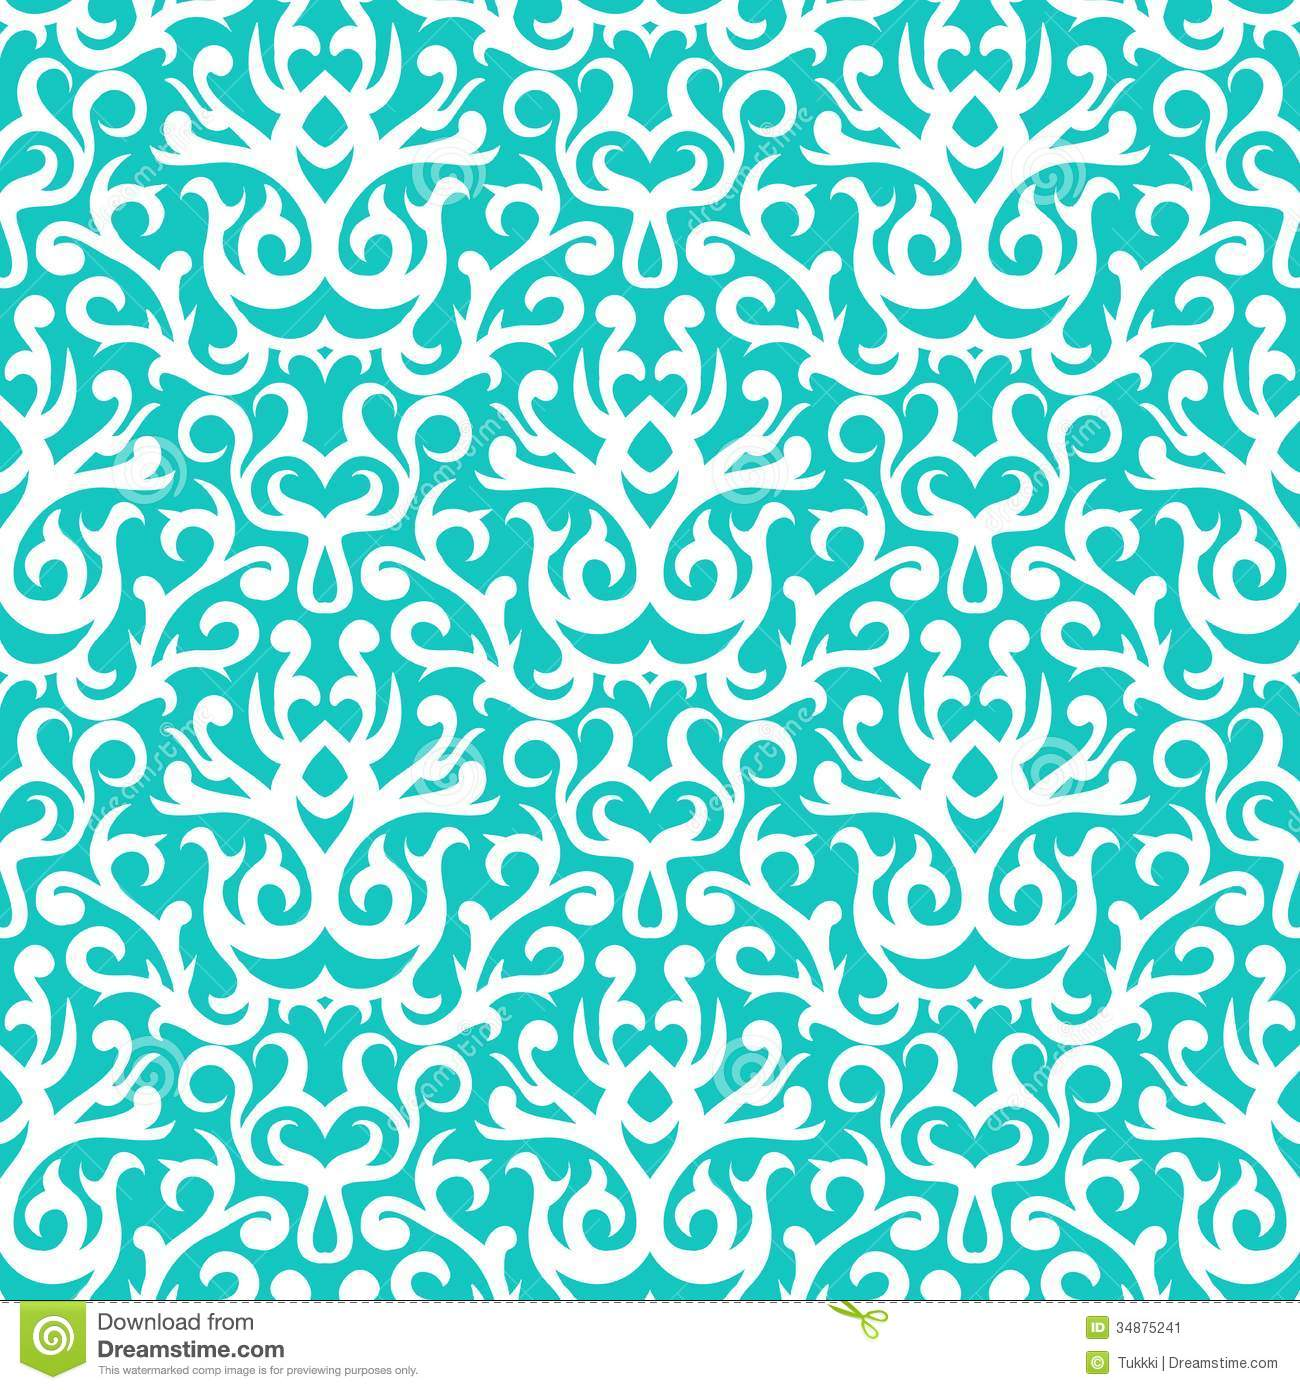 turquoise and white wallpaper wallpapersafari